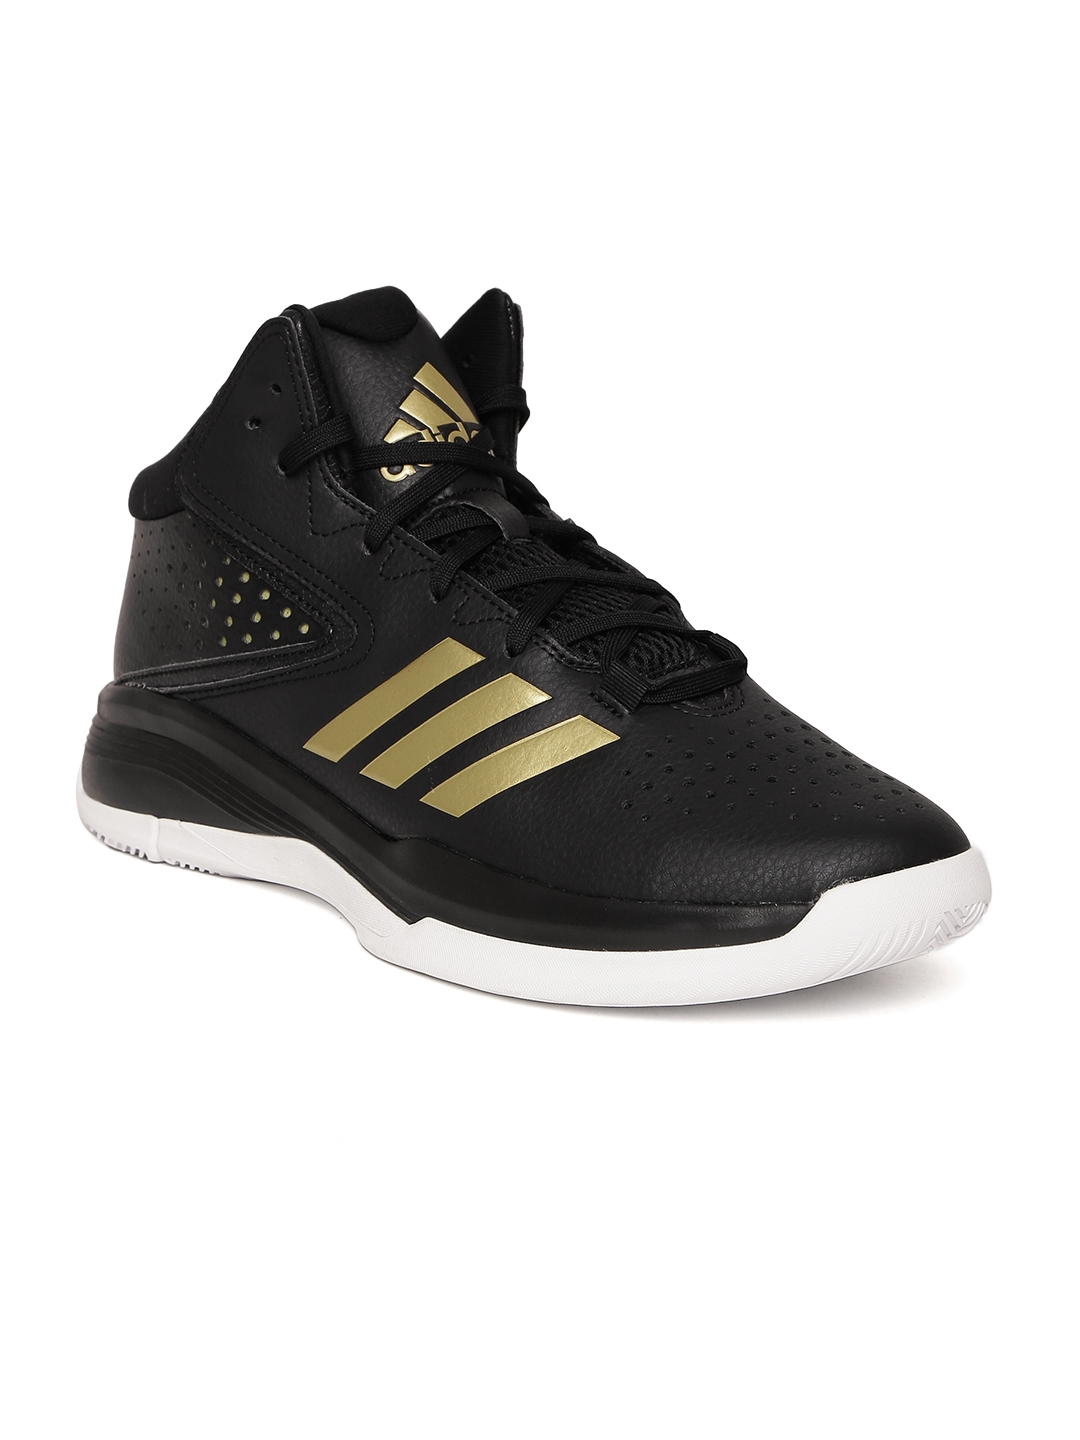 e24179ca189 Buy ADIDAS Men Black CROSS  EM 4 Mid Top Leather Basketball Shoes - Sports  Shoes for Men 1989516